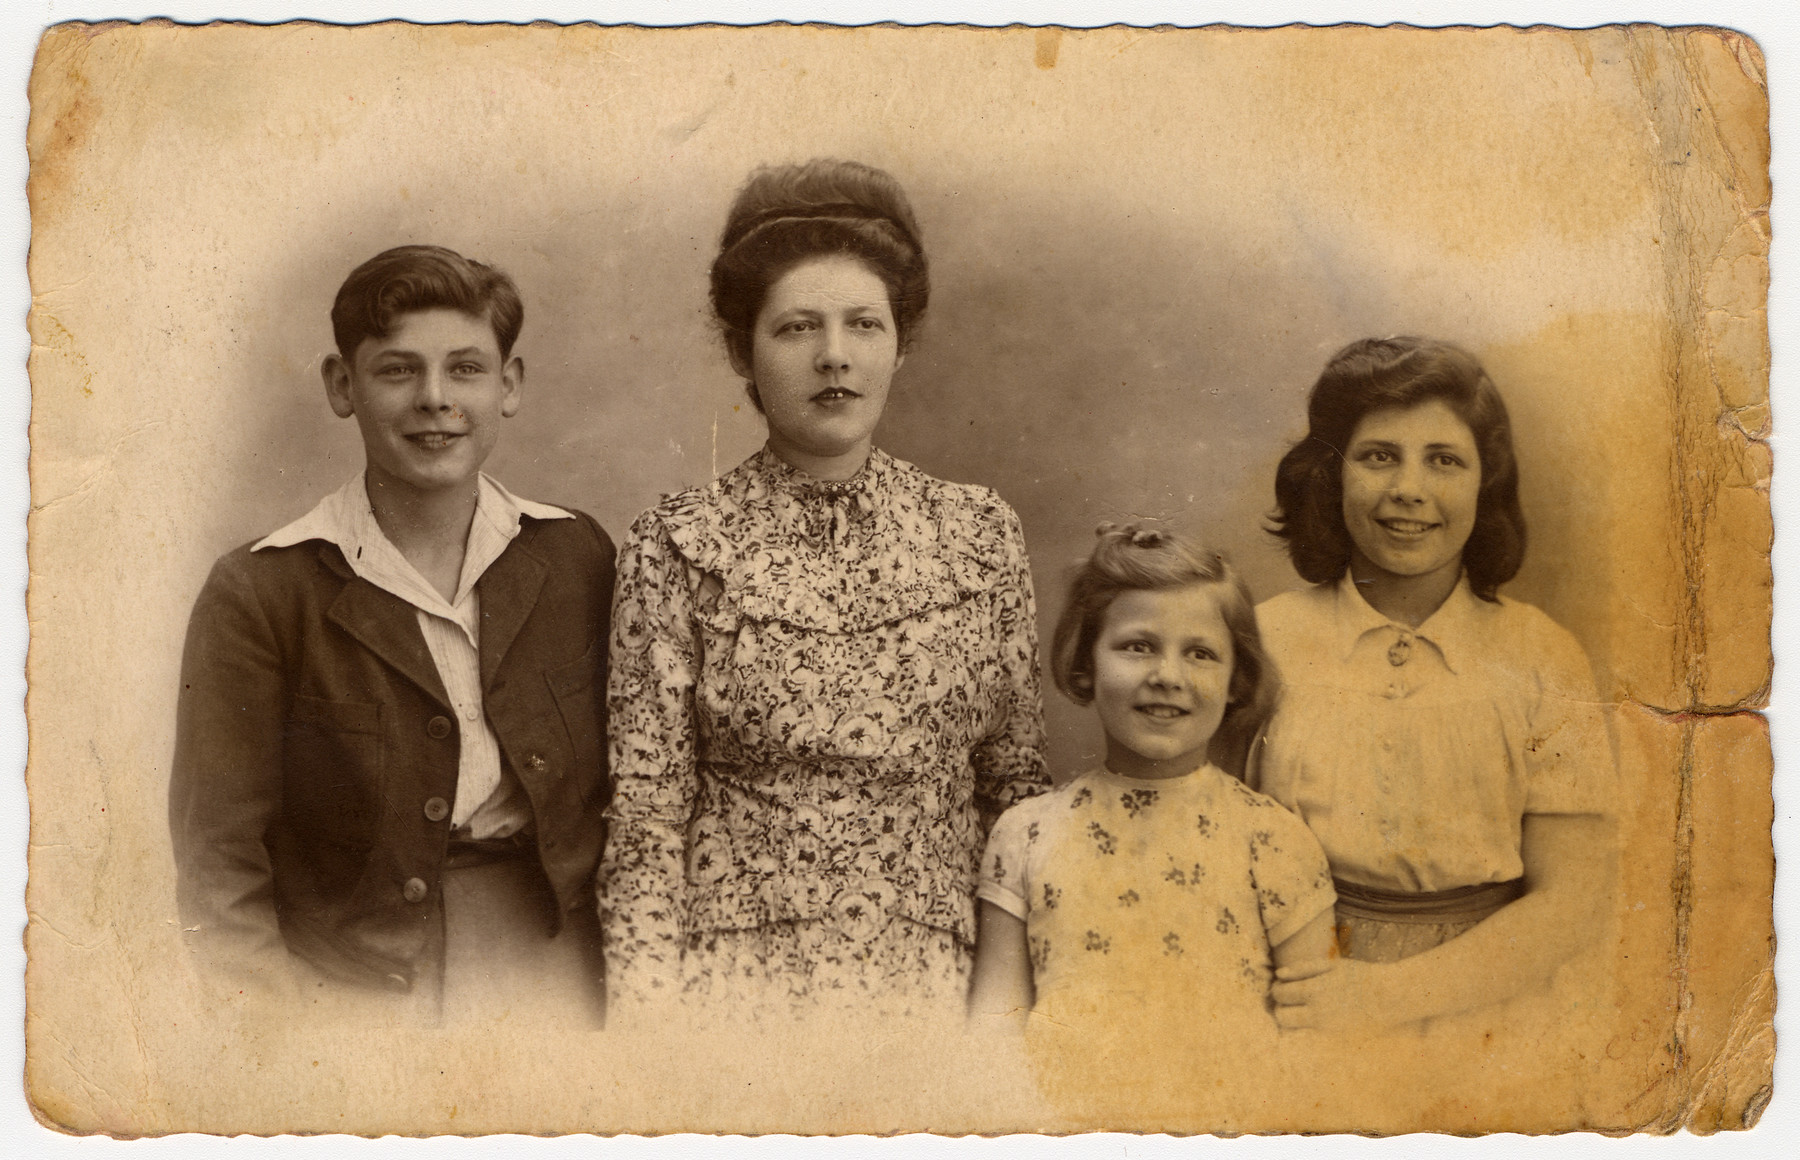 Postwar portrait of a Jewish woman and her three children, all of whom survived the war in hiding.  From left to right are Aime, Lola, Monique and Irene Burenstein.